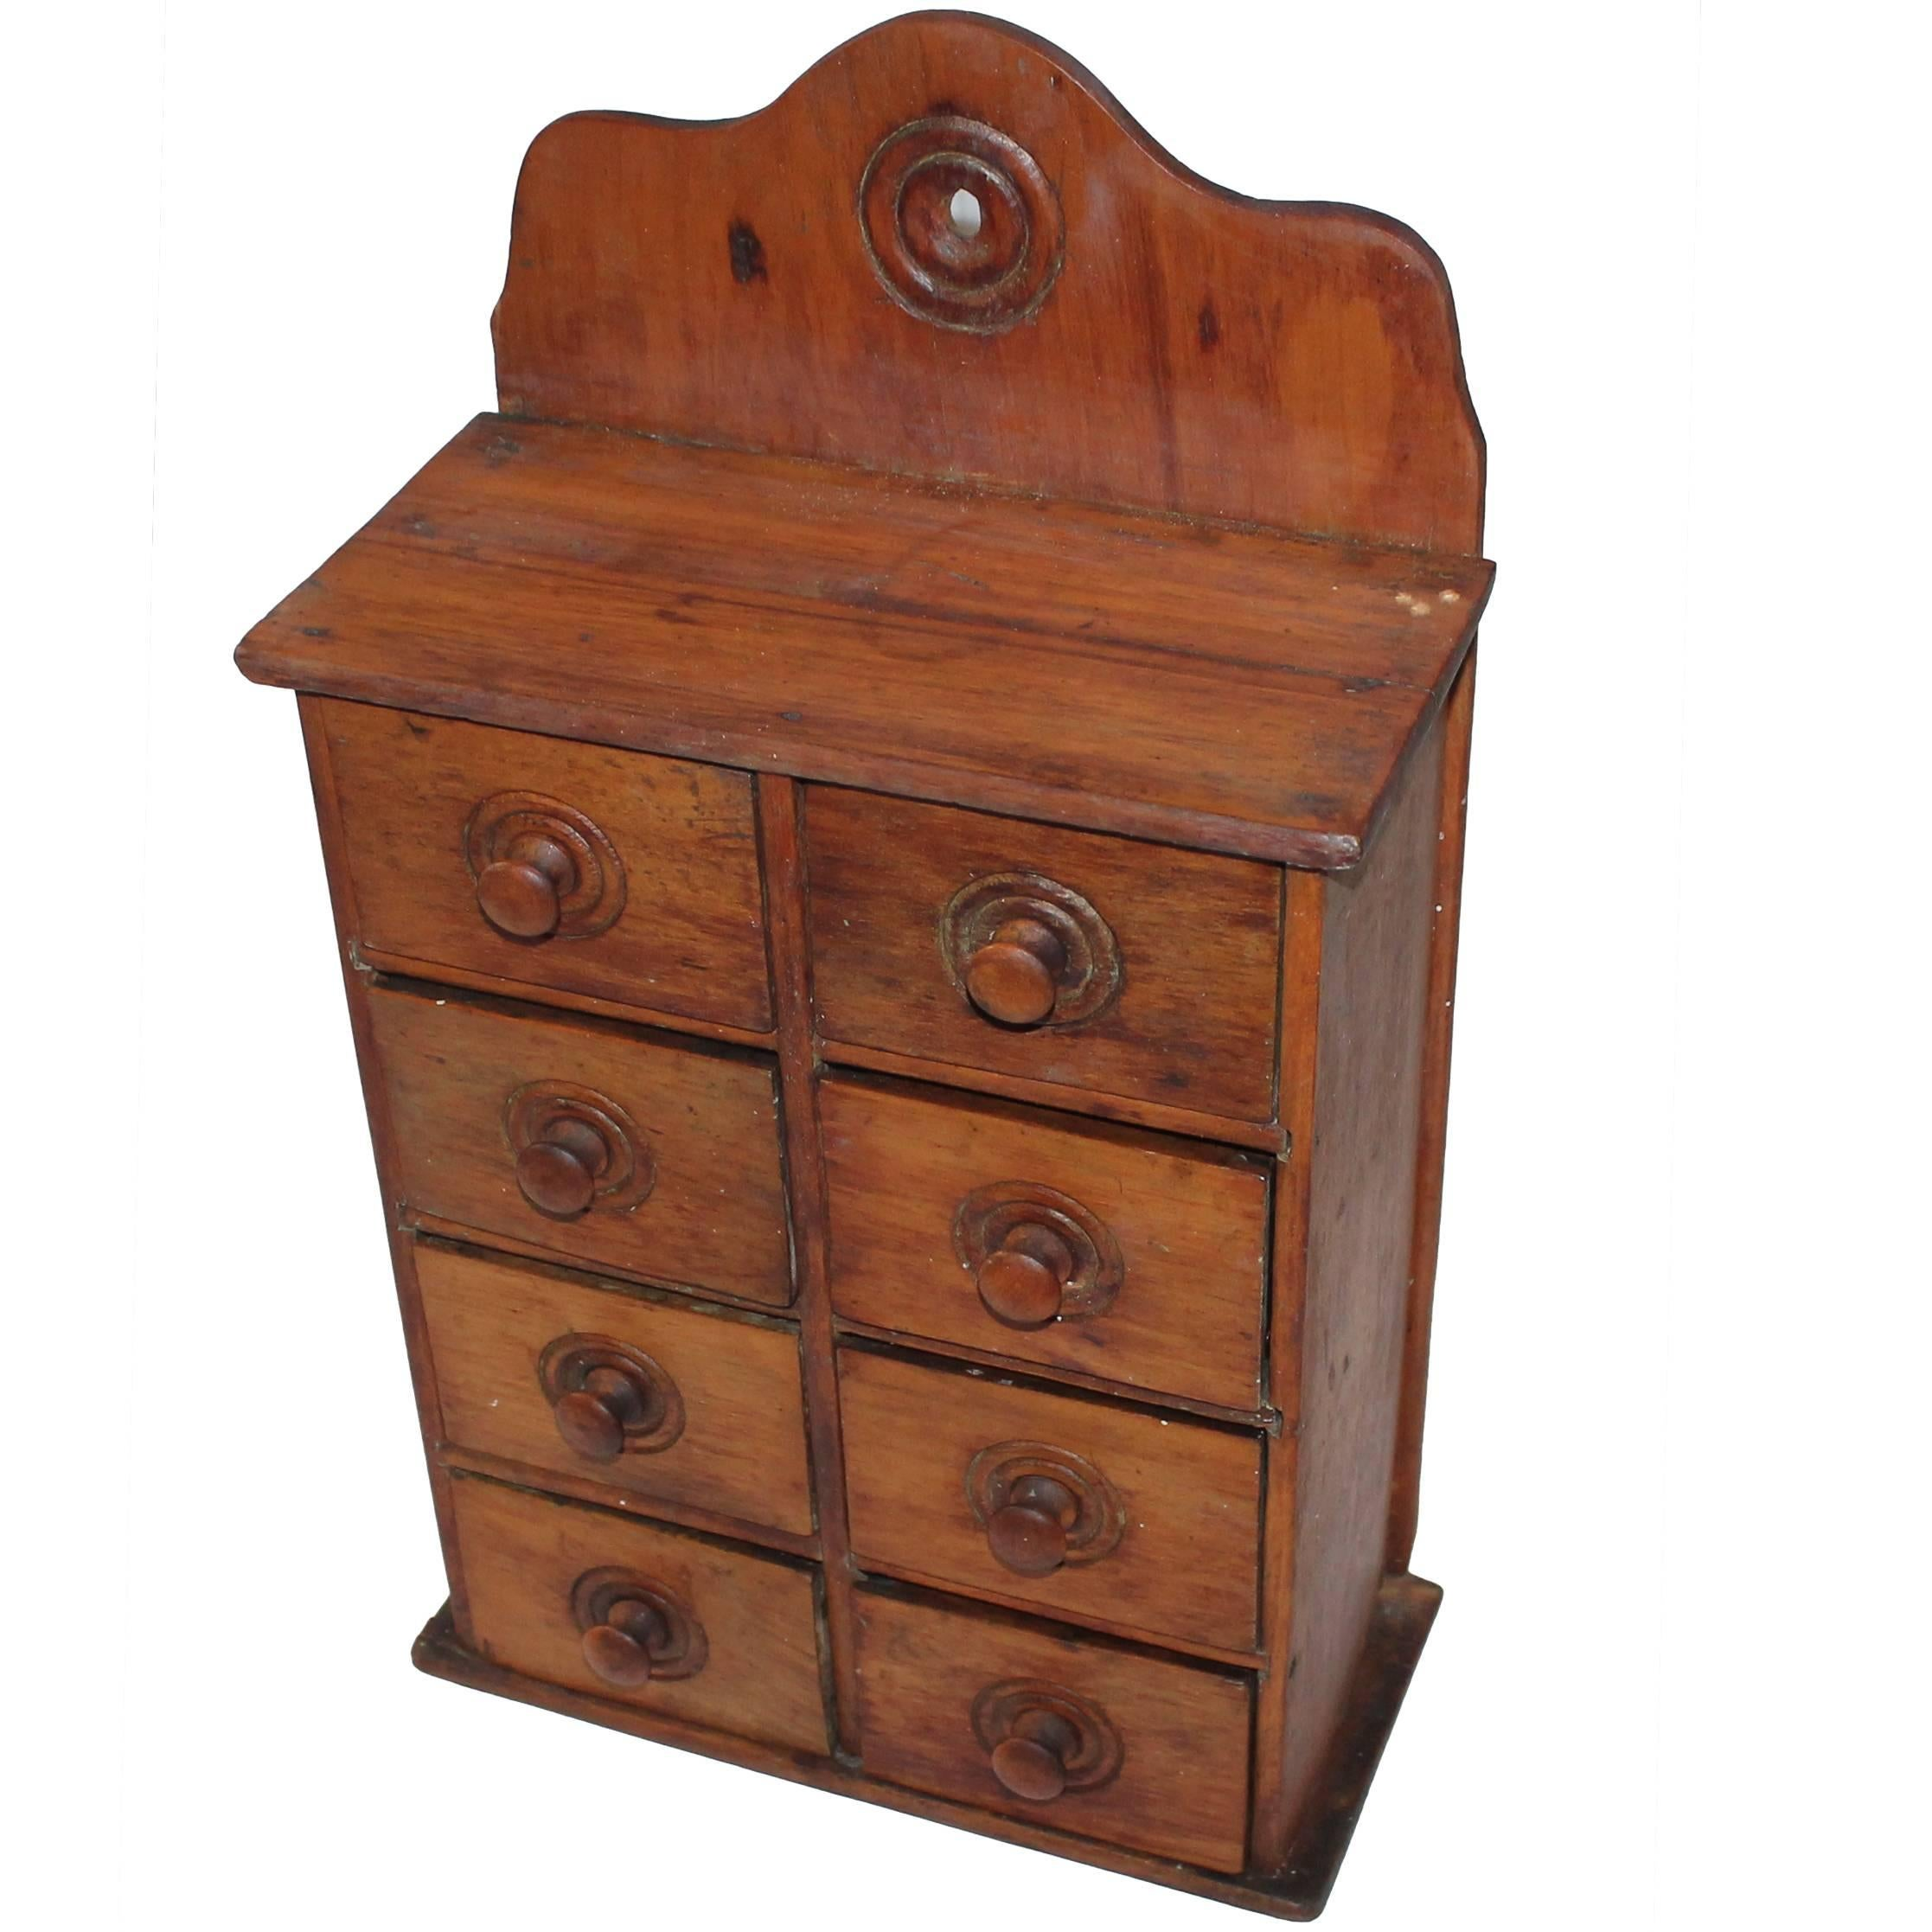 19th Century Wall Hanging Spice Cabinet